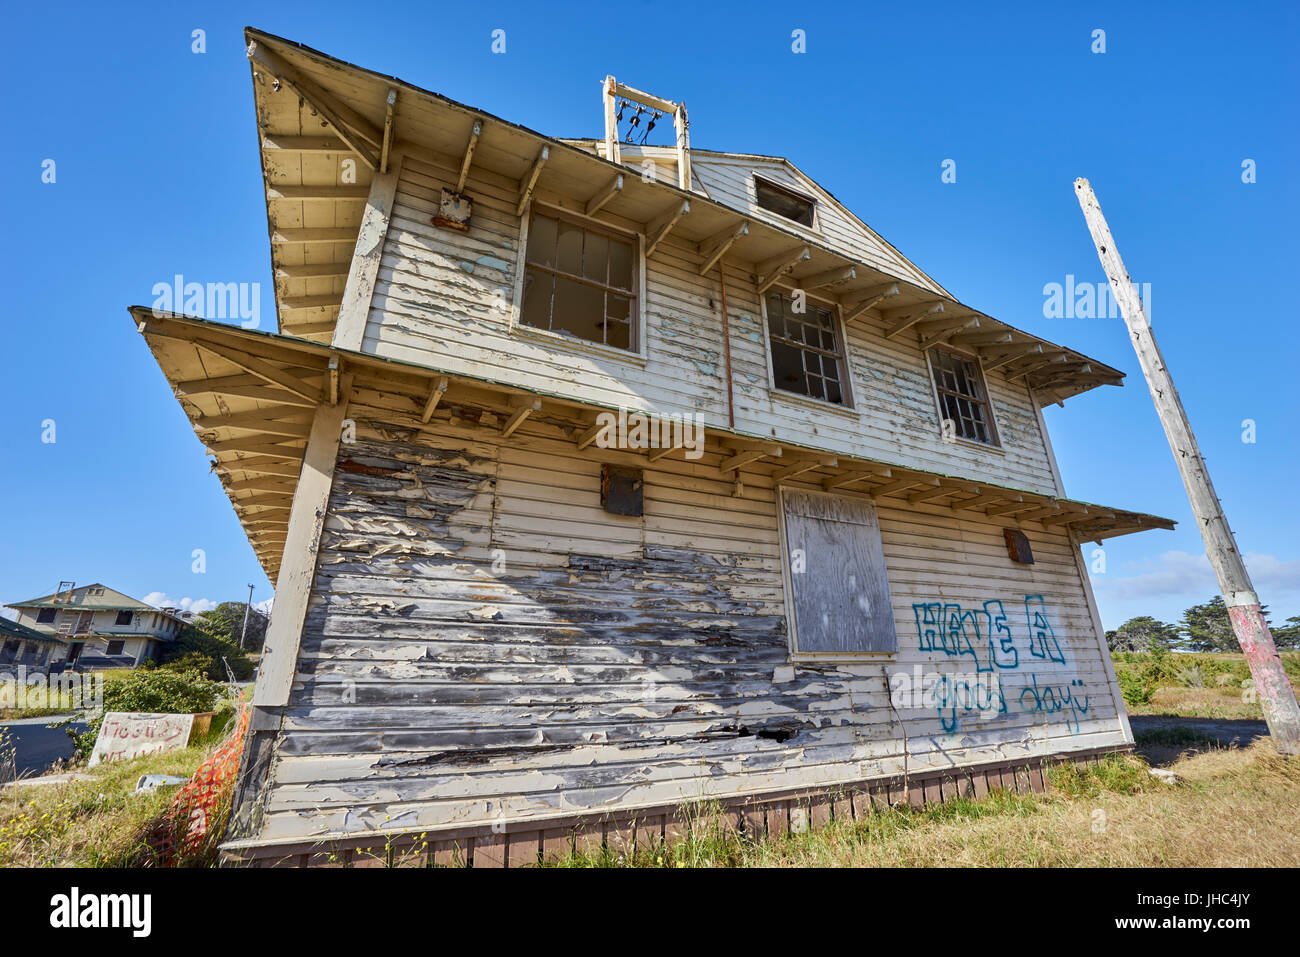 close-up of vacant decayed house with blown out windows - Stock Image